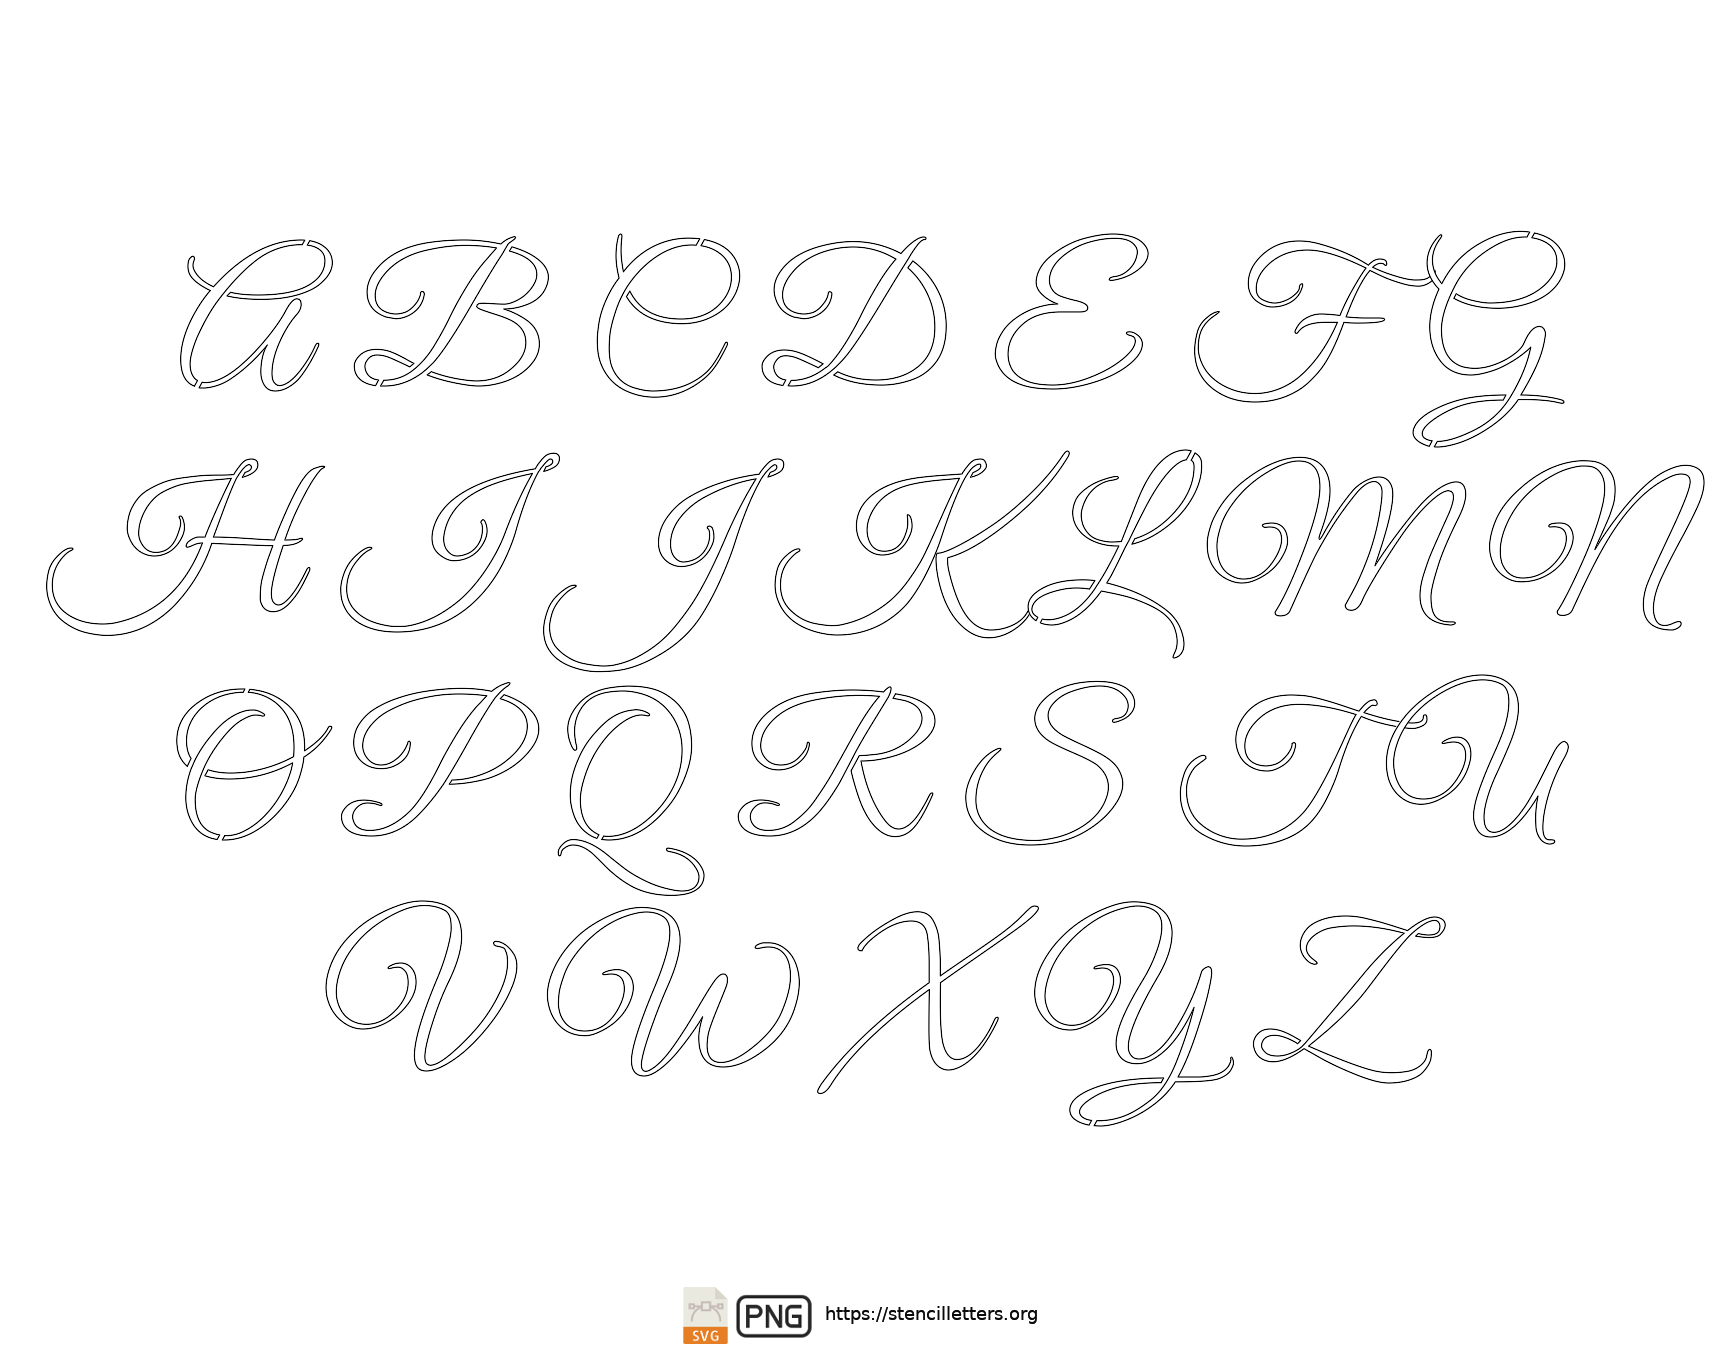 Stylish Calligraphy uppercase letter stencils